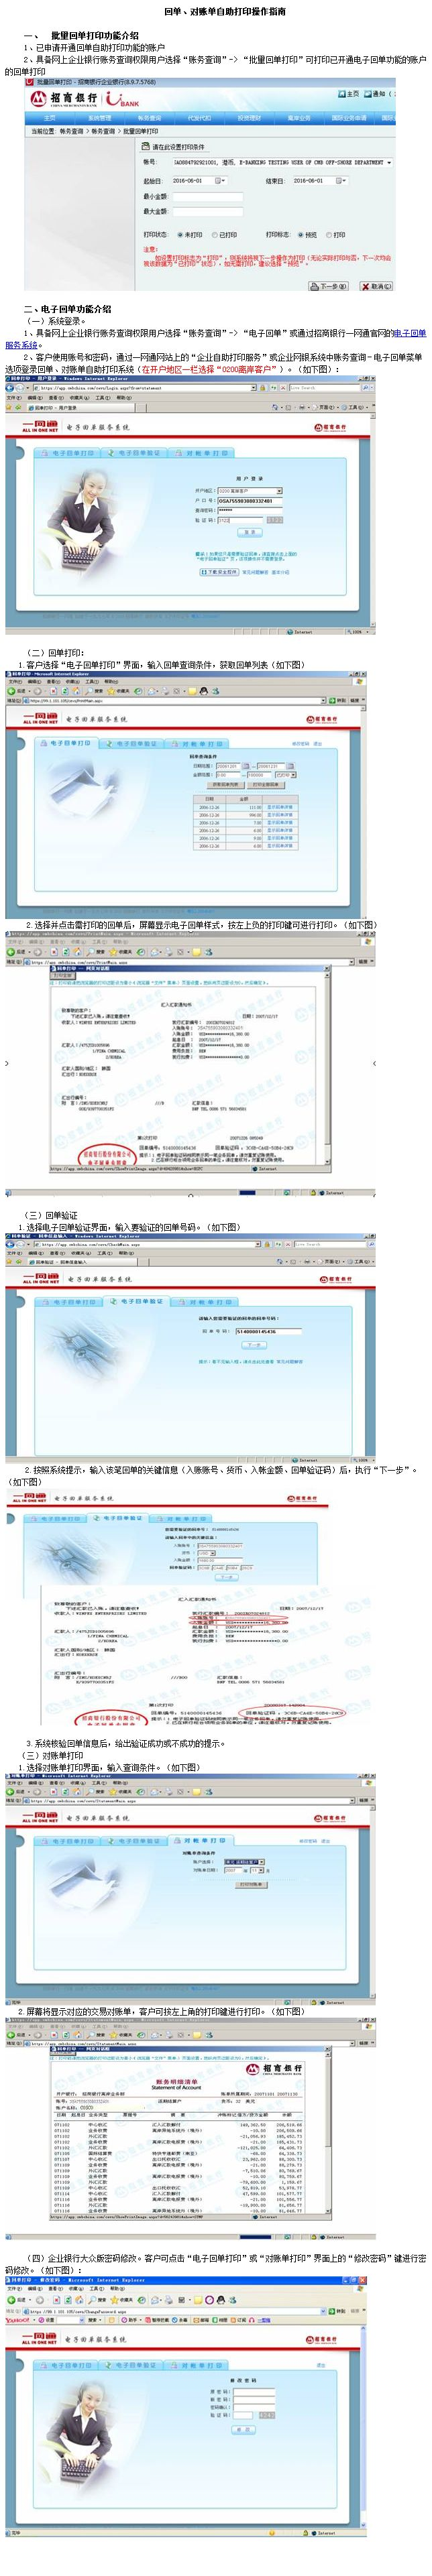 china-merchants-bank-corporate-banking-e-print-01